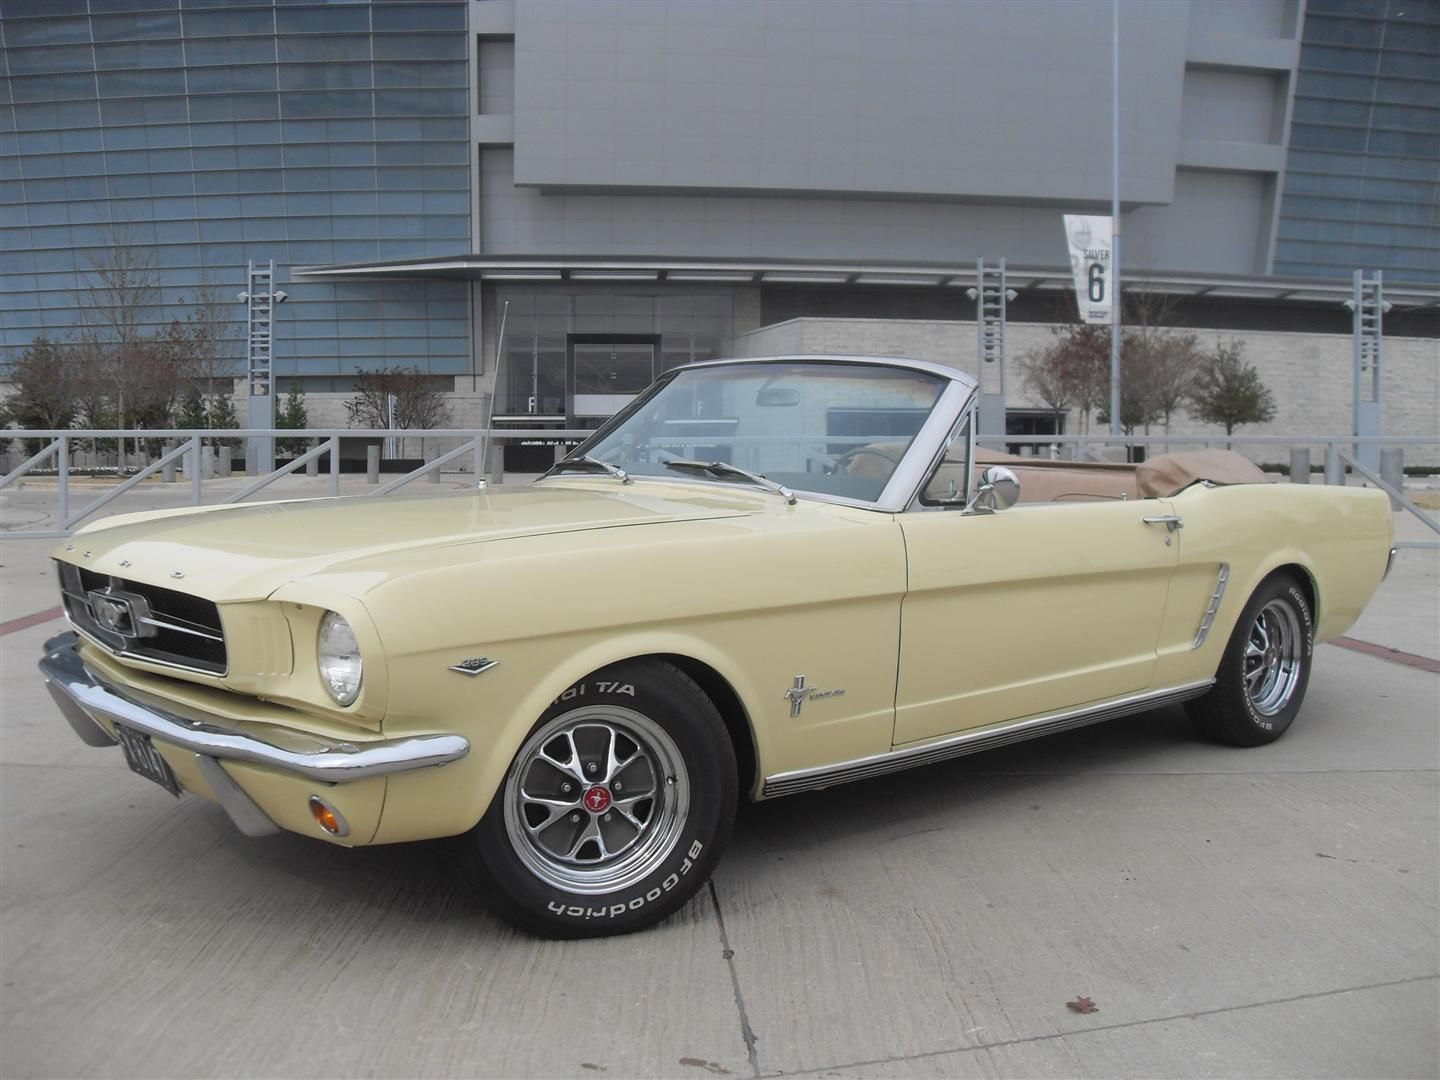 65 Mustang Convertible My Mother Wanted This Yellow One In 65 But Could Only Get The Powder Blue Wa In 2020 Mustang Convertible 65 Mustang Convertible Dream Cars